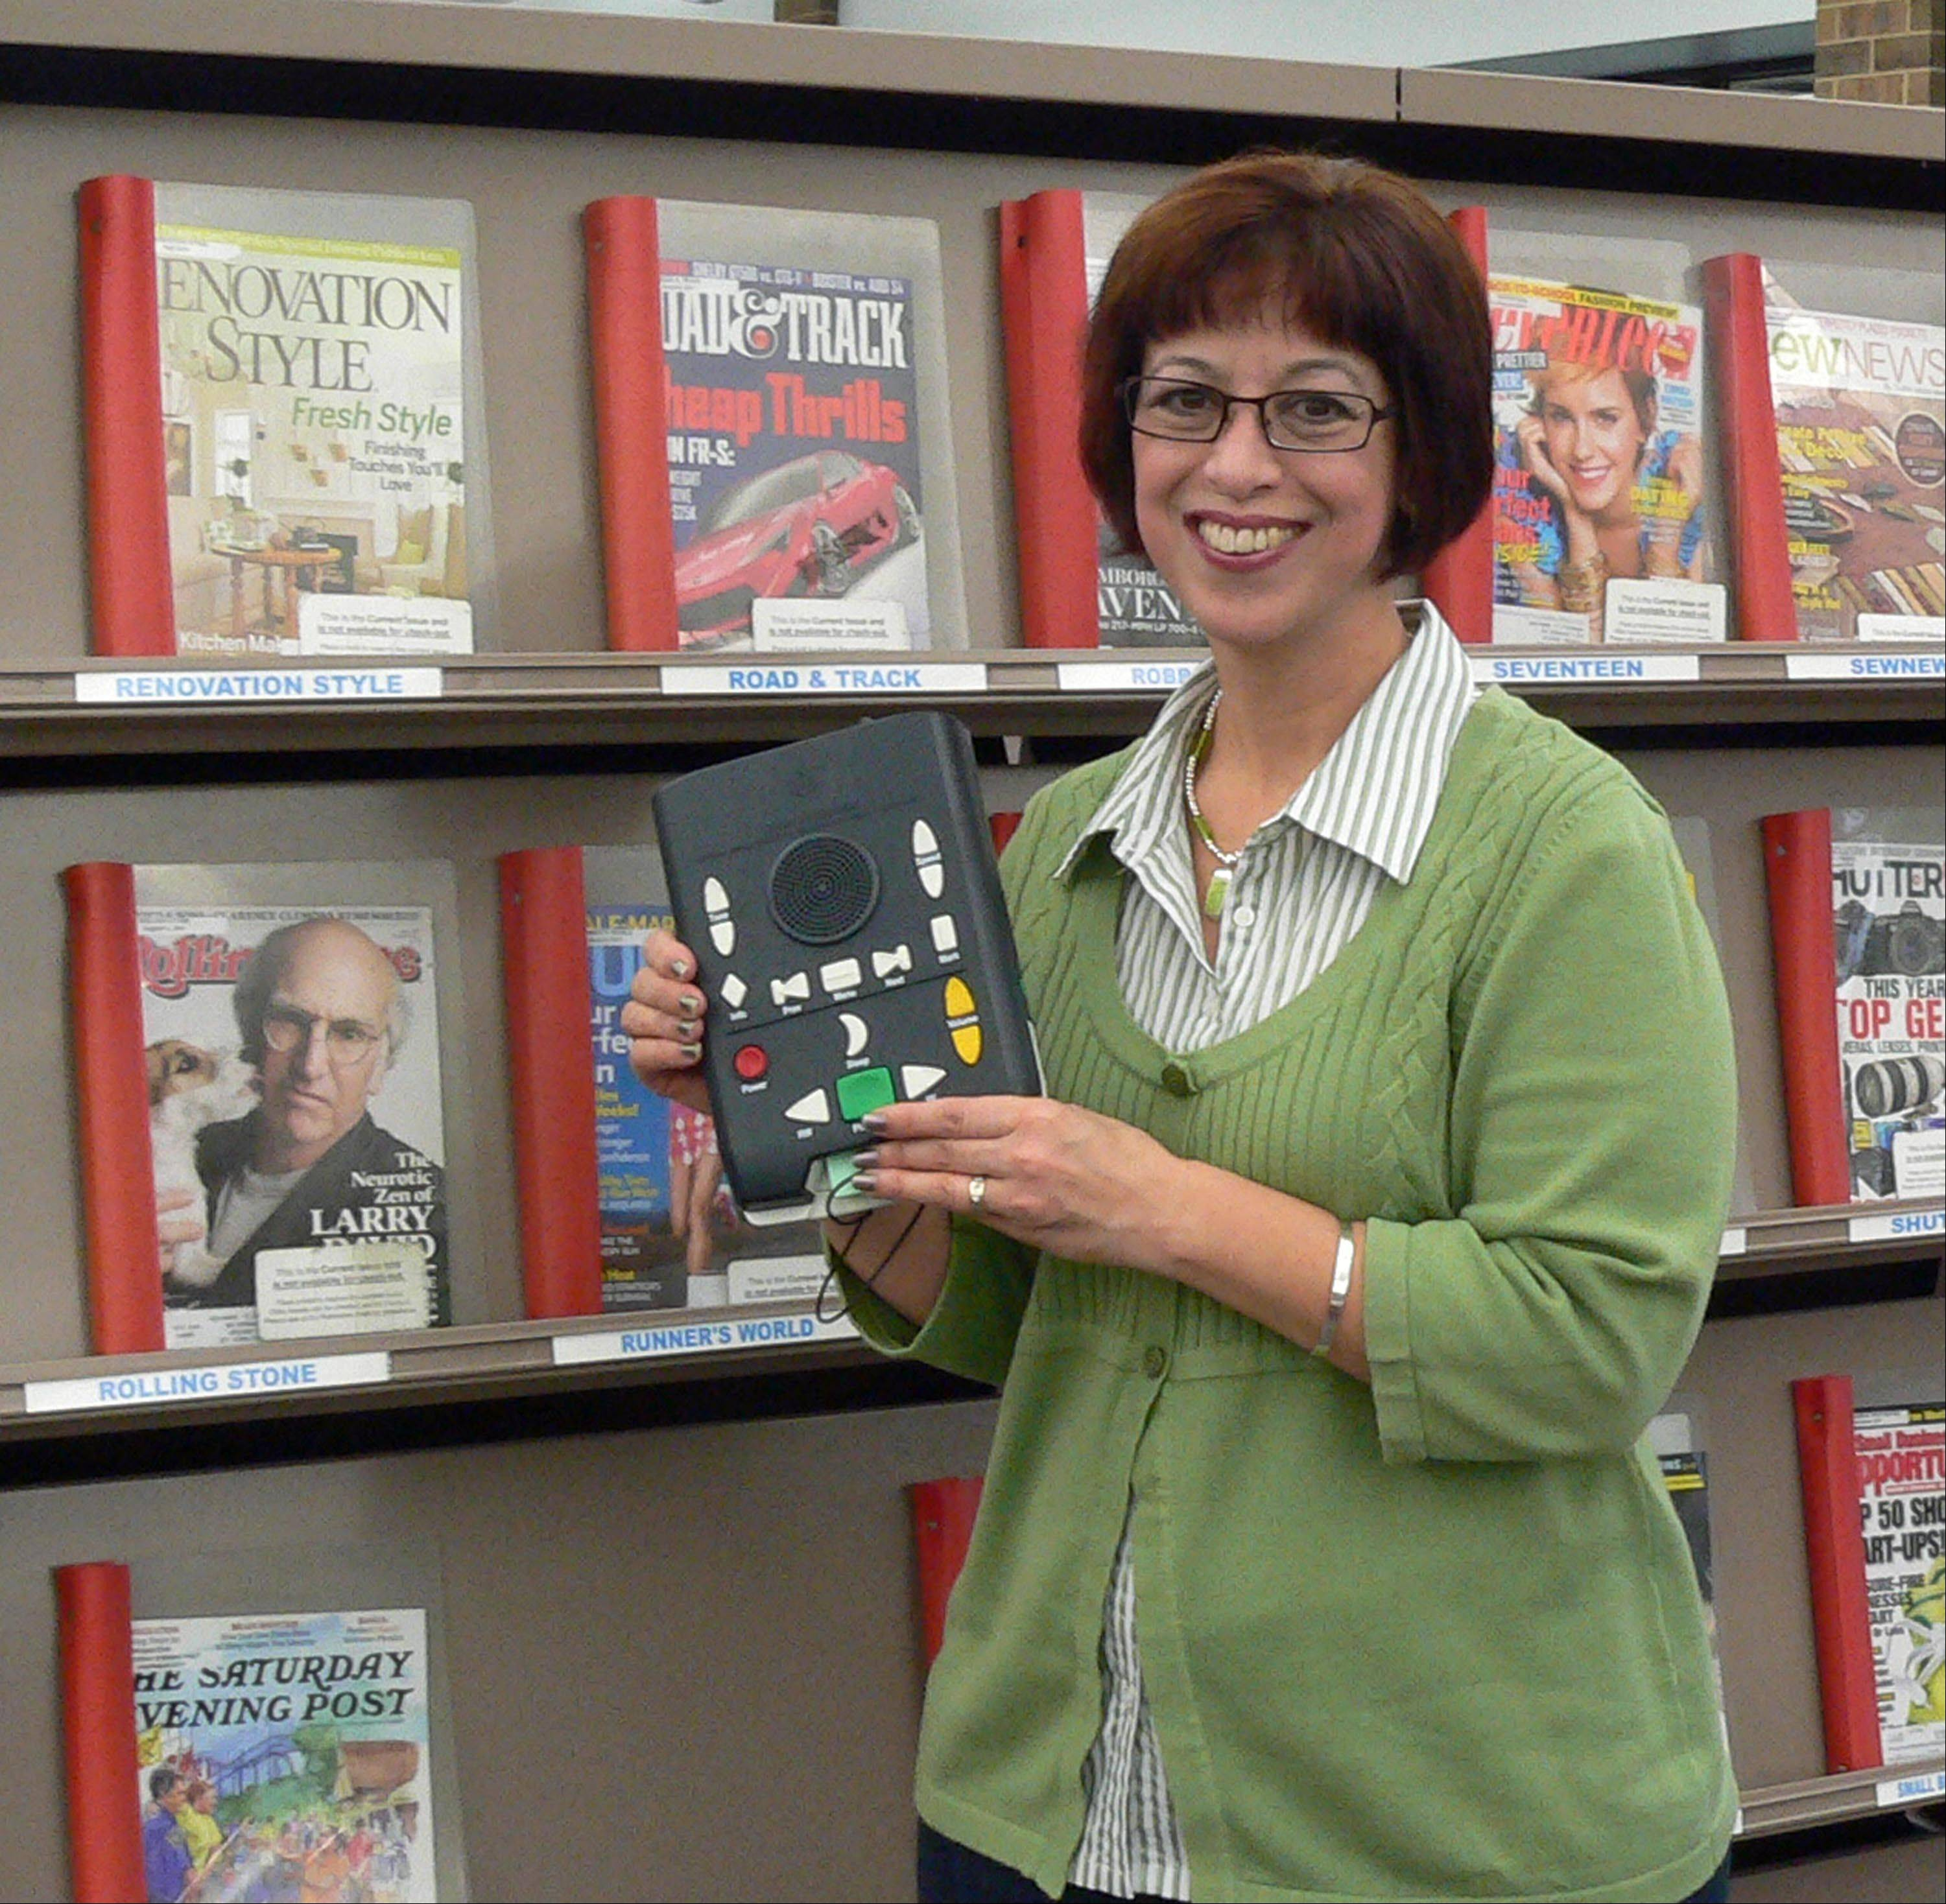 Naperville Public Library now has digital talking books available